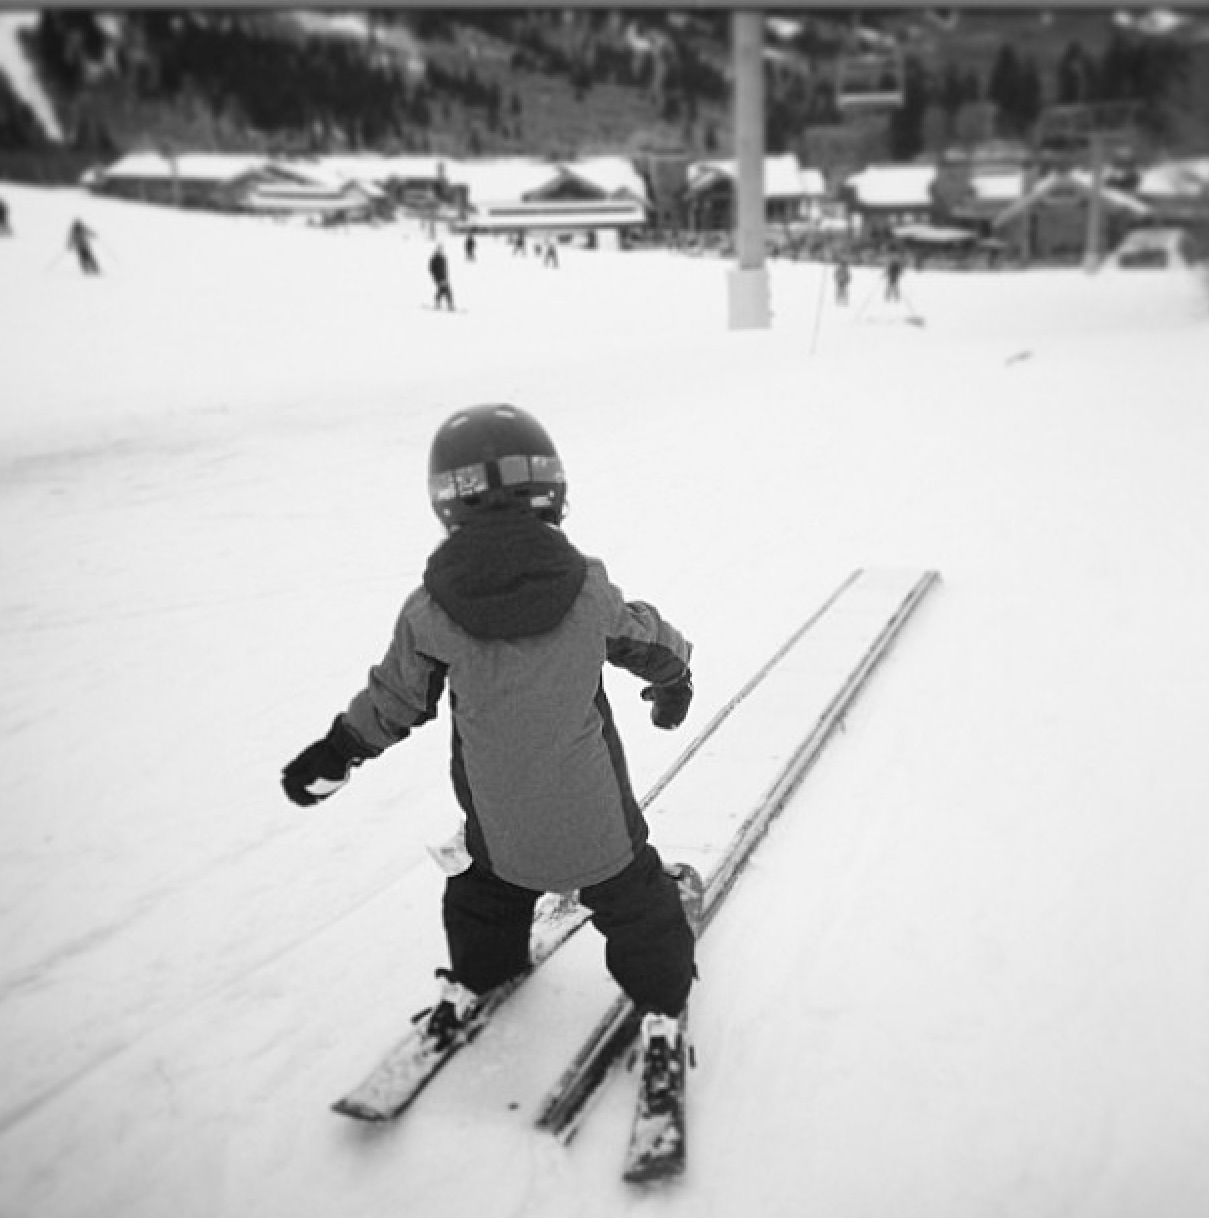 3 Years Old And Dominating The New Powder Puff Park Sbparks Skiing Rails Park Skiing Plein Air